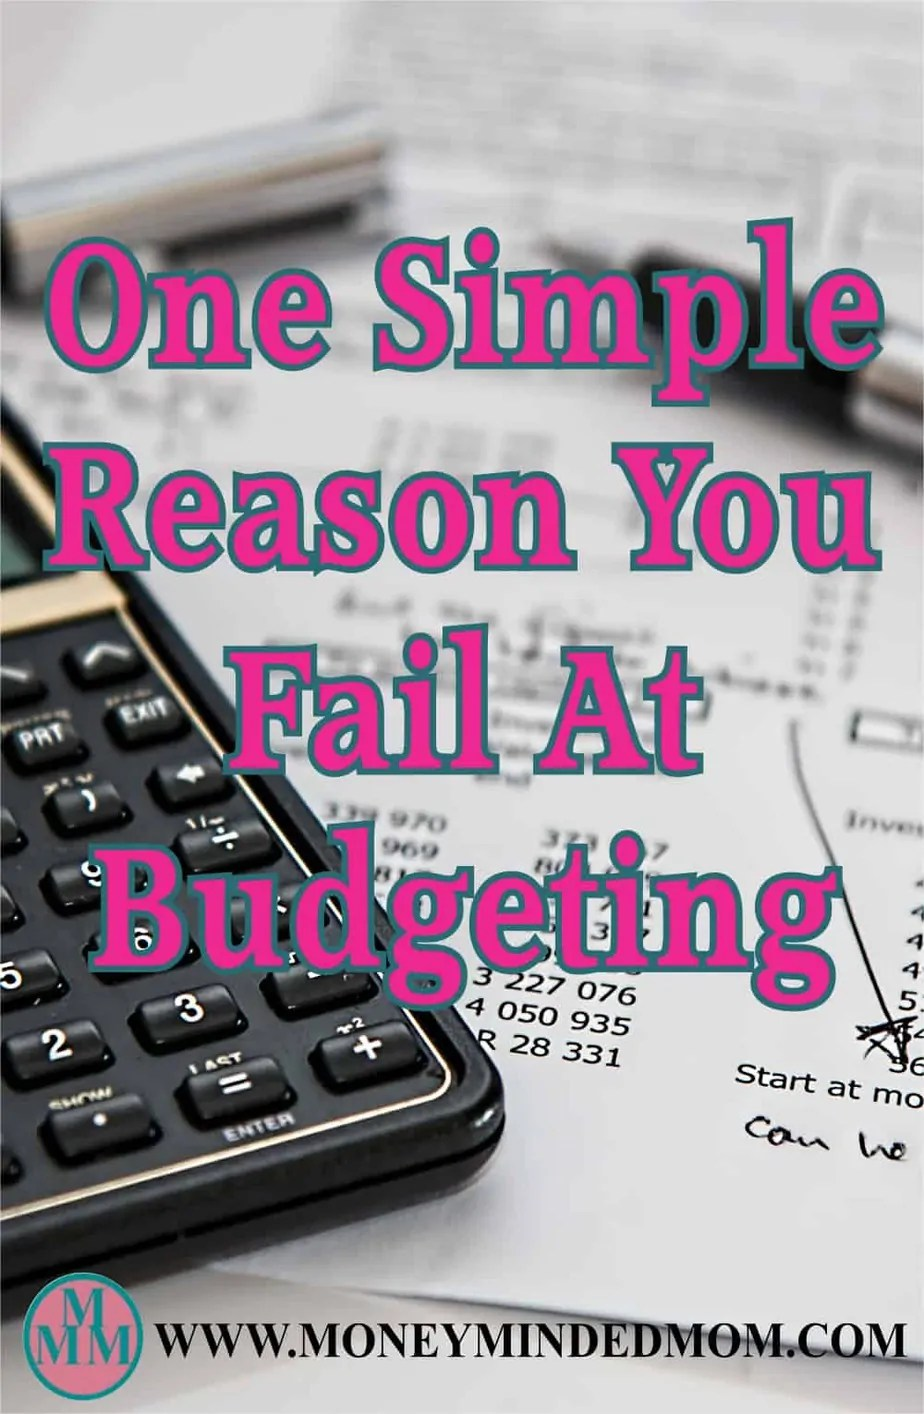 One Simple Reason You Can't Stick To Your Budget